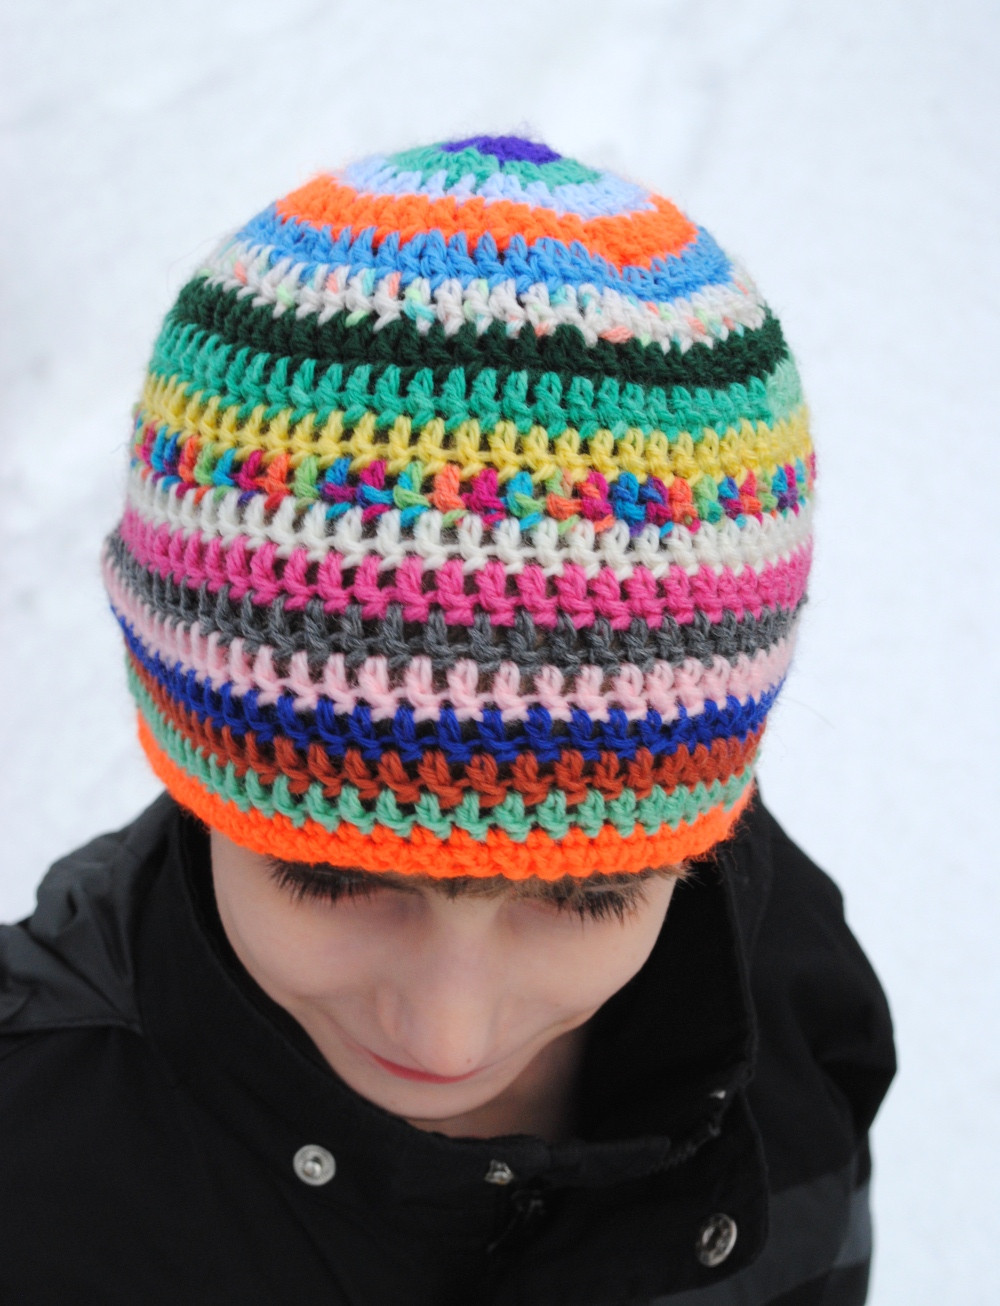 New Easy Charity Crochet Beanie Hat – Free Pattern Crochet Hat Patterns for Adults Of Fresh Give A Hoot Crocheted Hat Free Pattern for Kids and Adult Crochet Hat Patterns for Adults